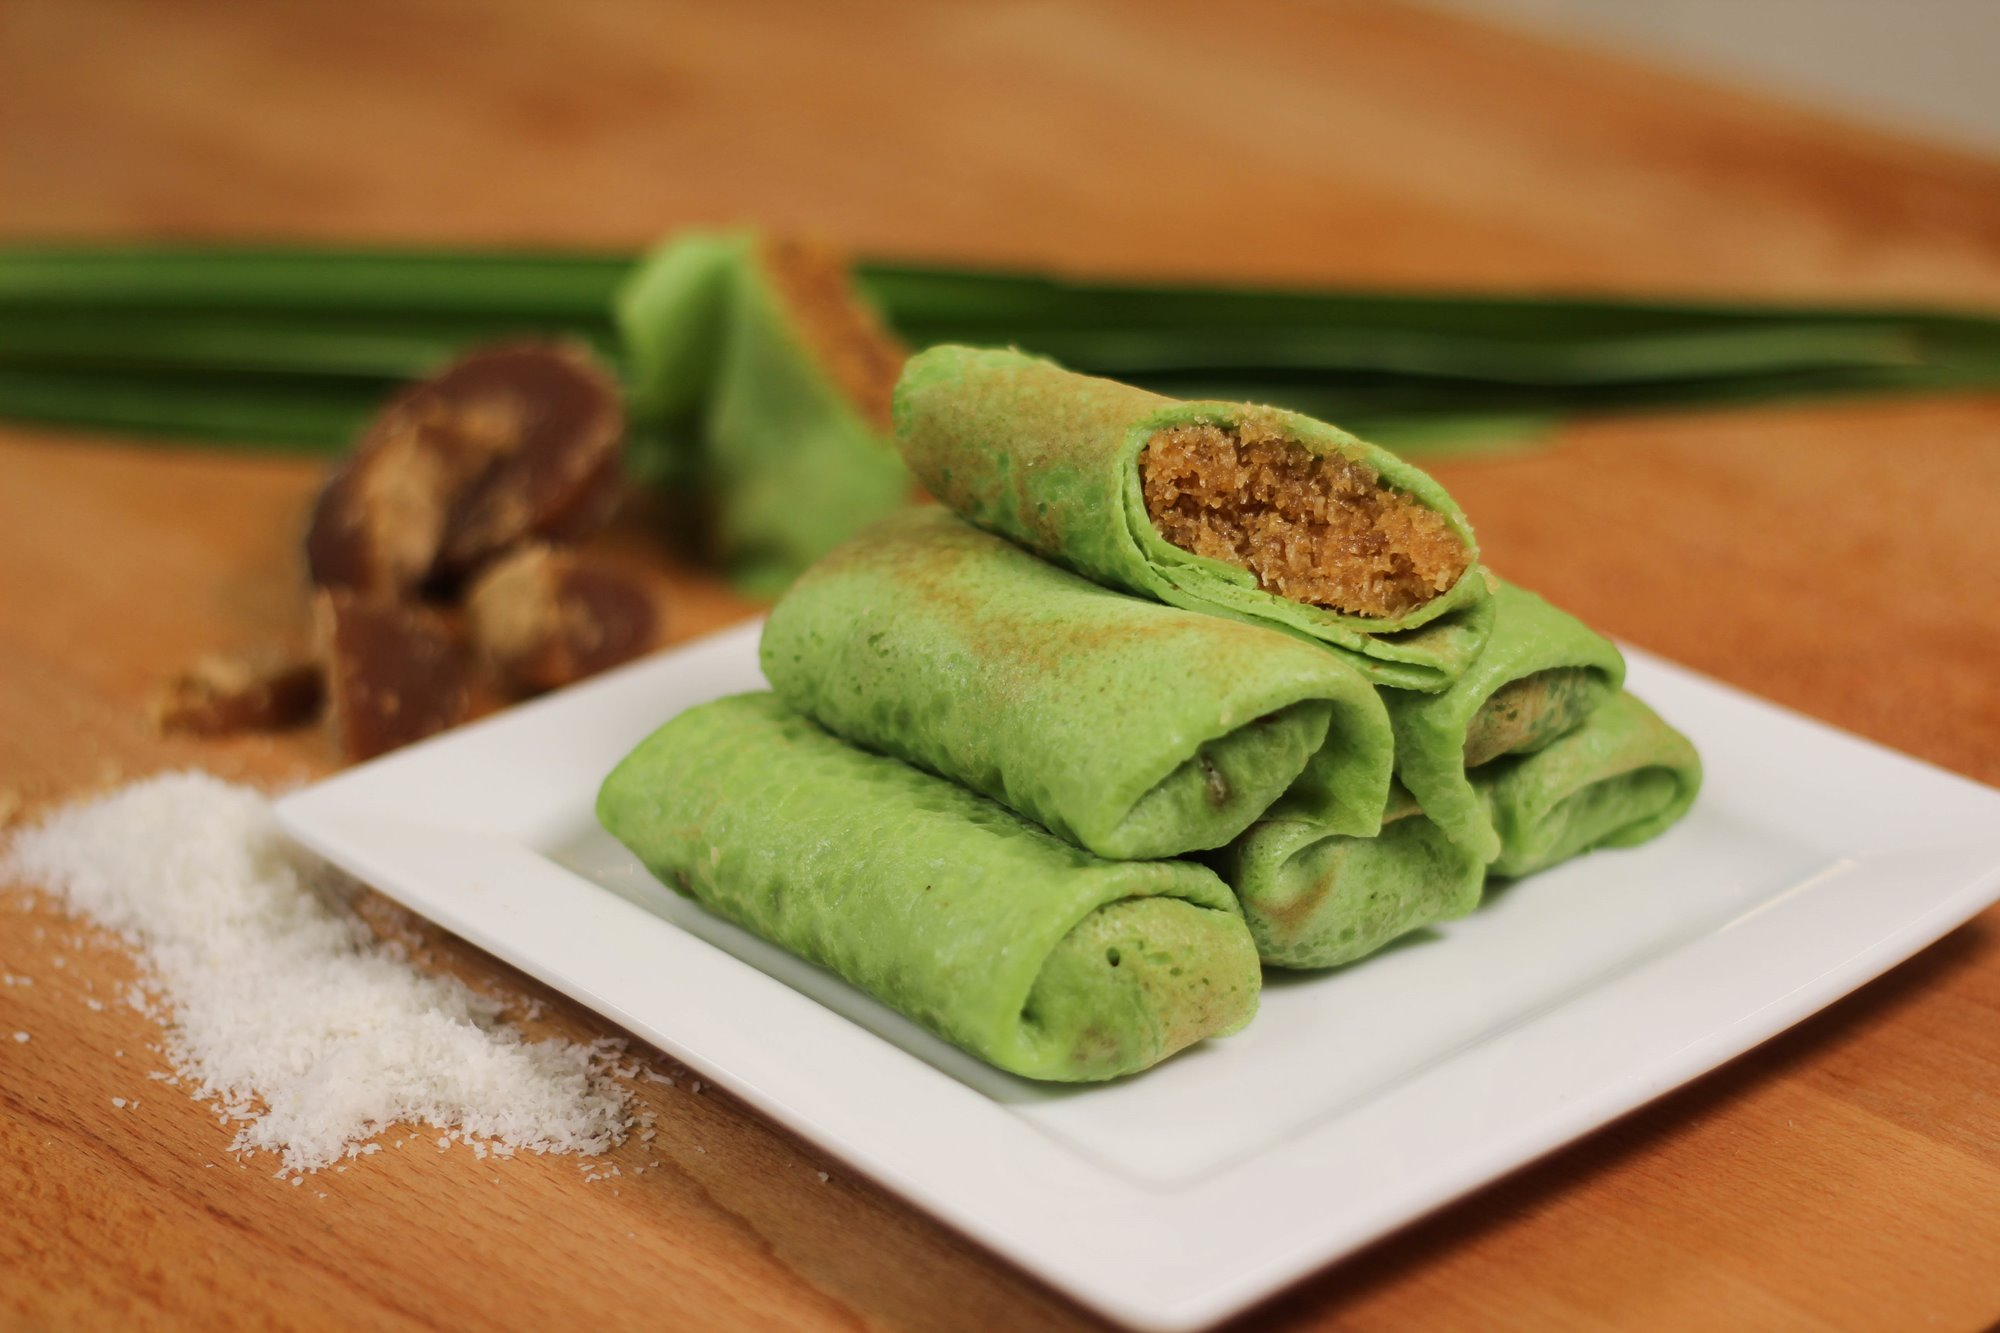 Kueh Dadar with Panasonic MX-V310 Blender